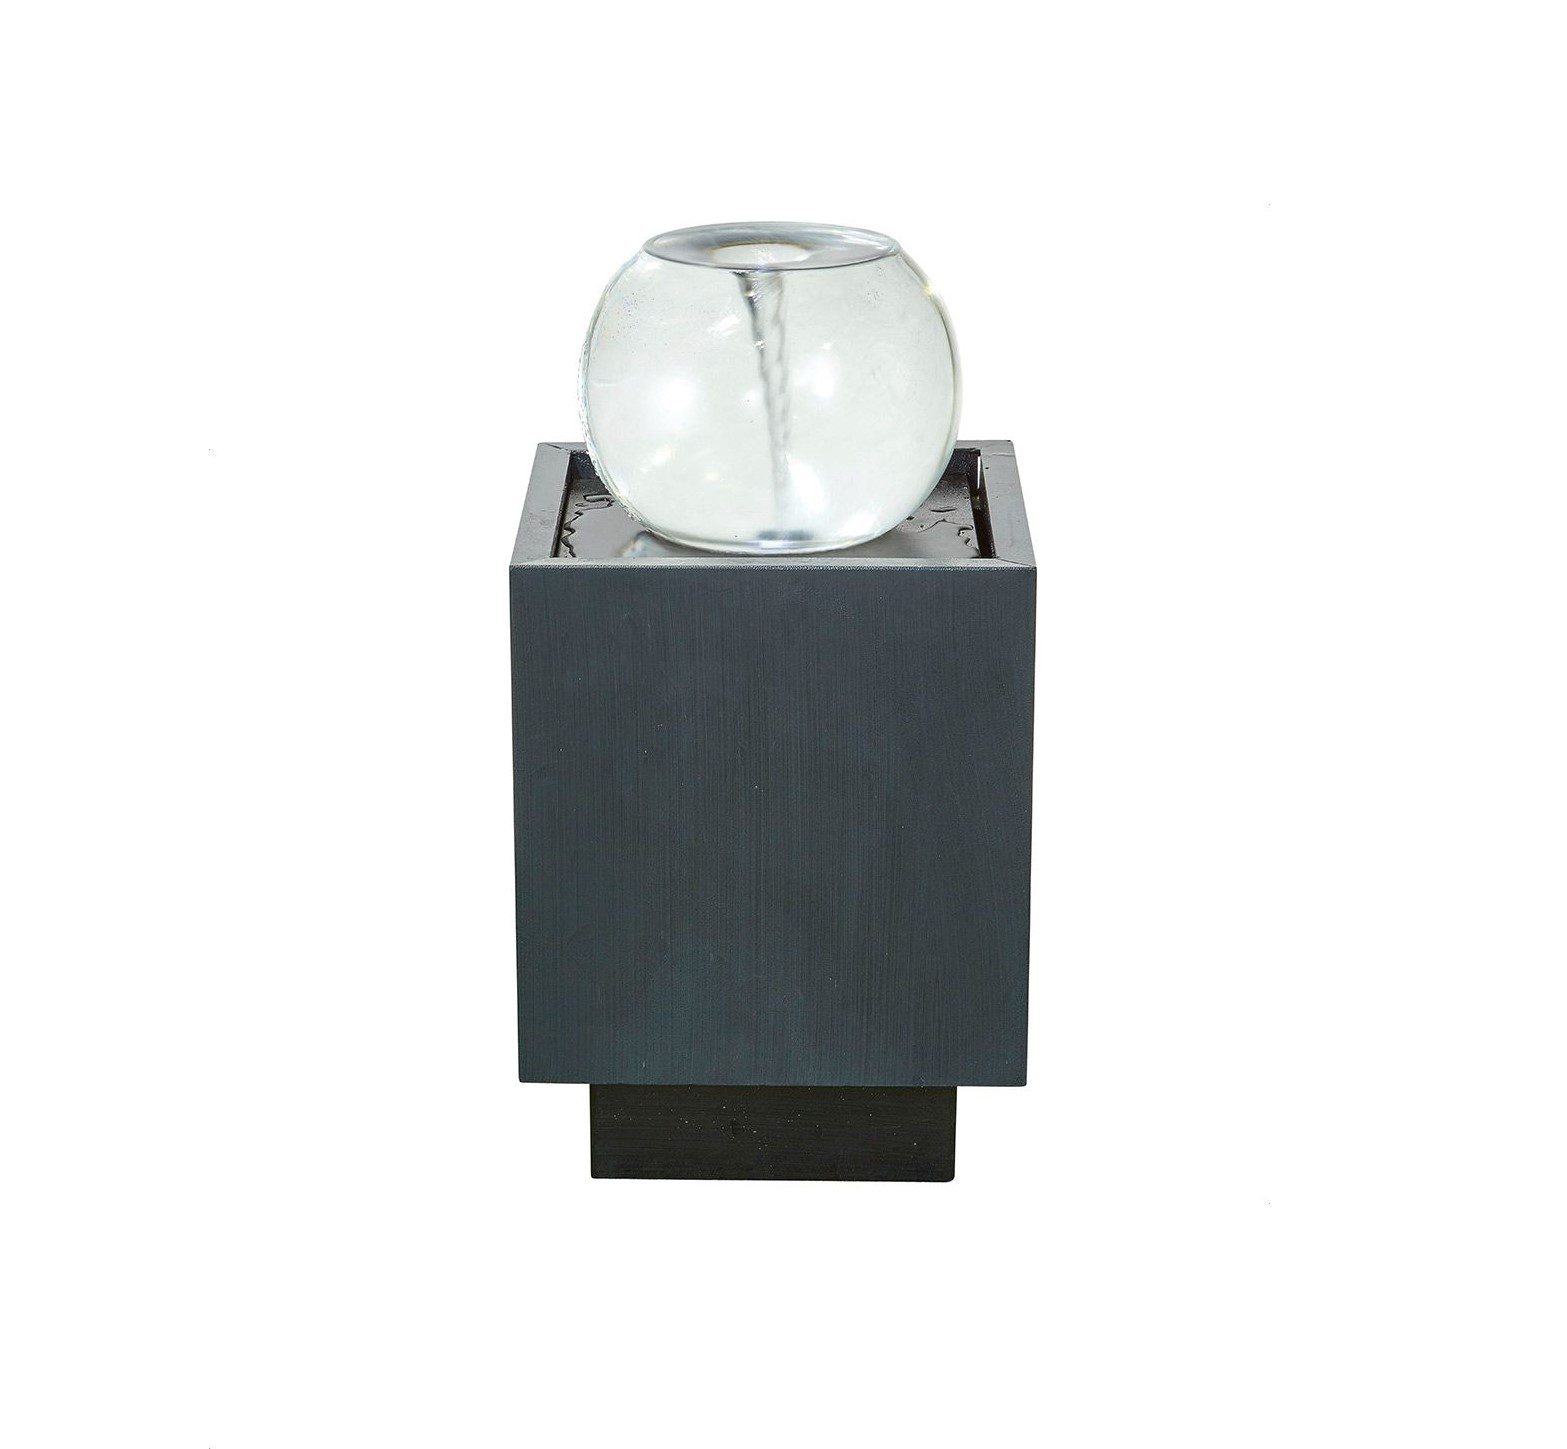 Kelkay Vortex Sphere water feature